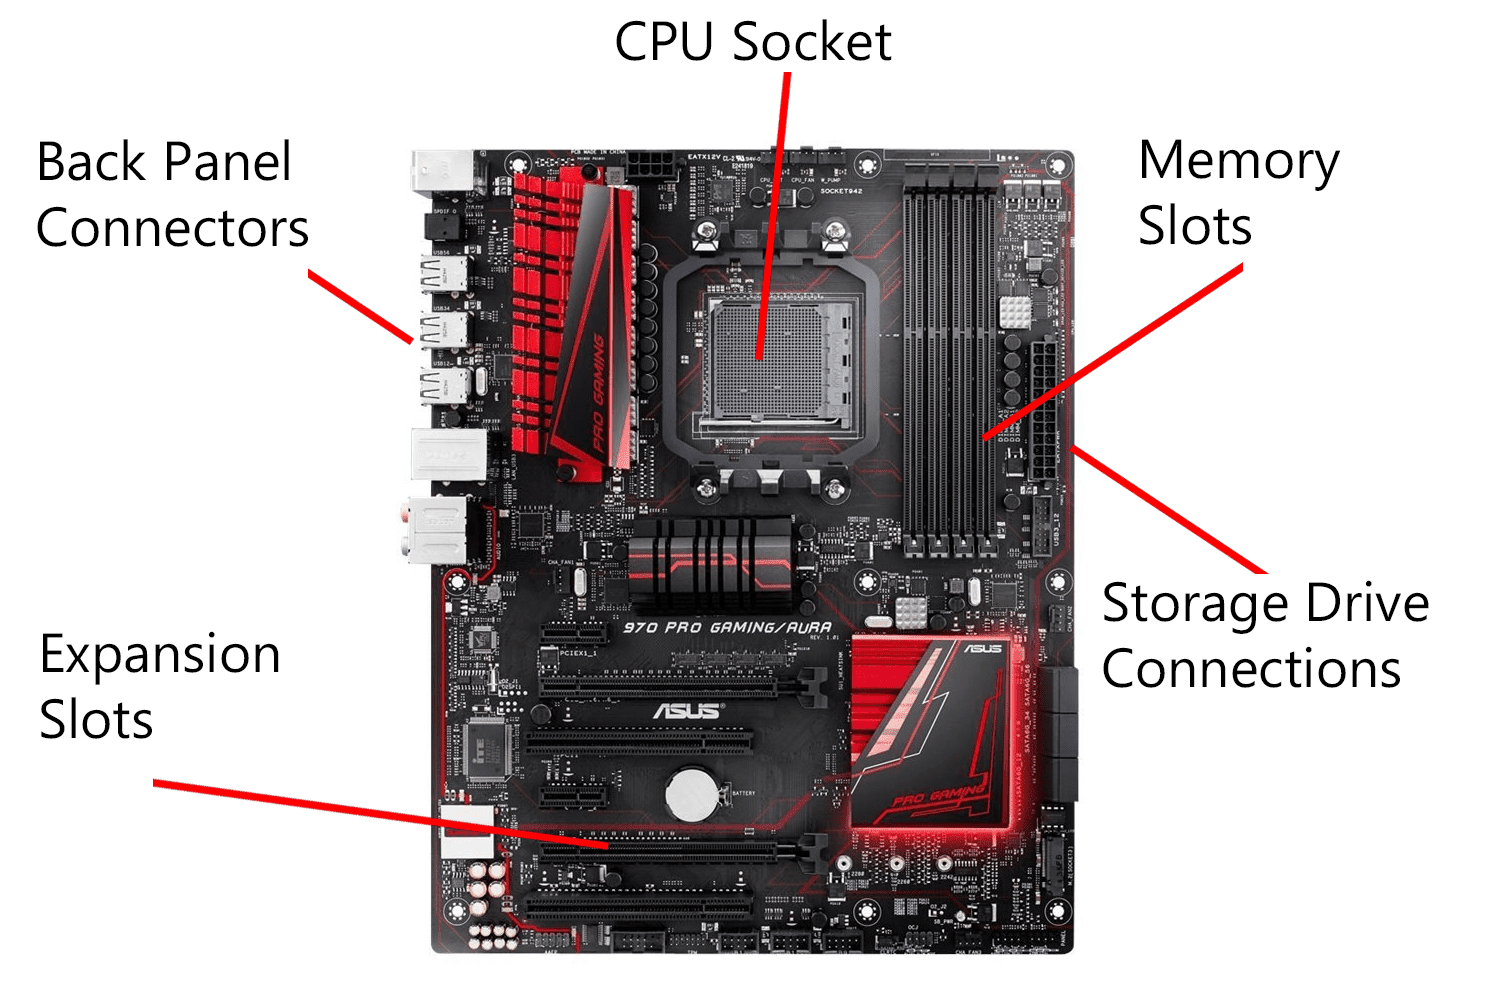 Pcie 8 Pin Wiring Diagram What Are Expansion Slots